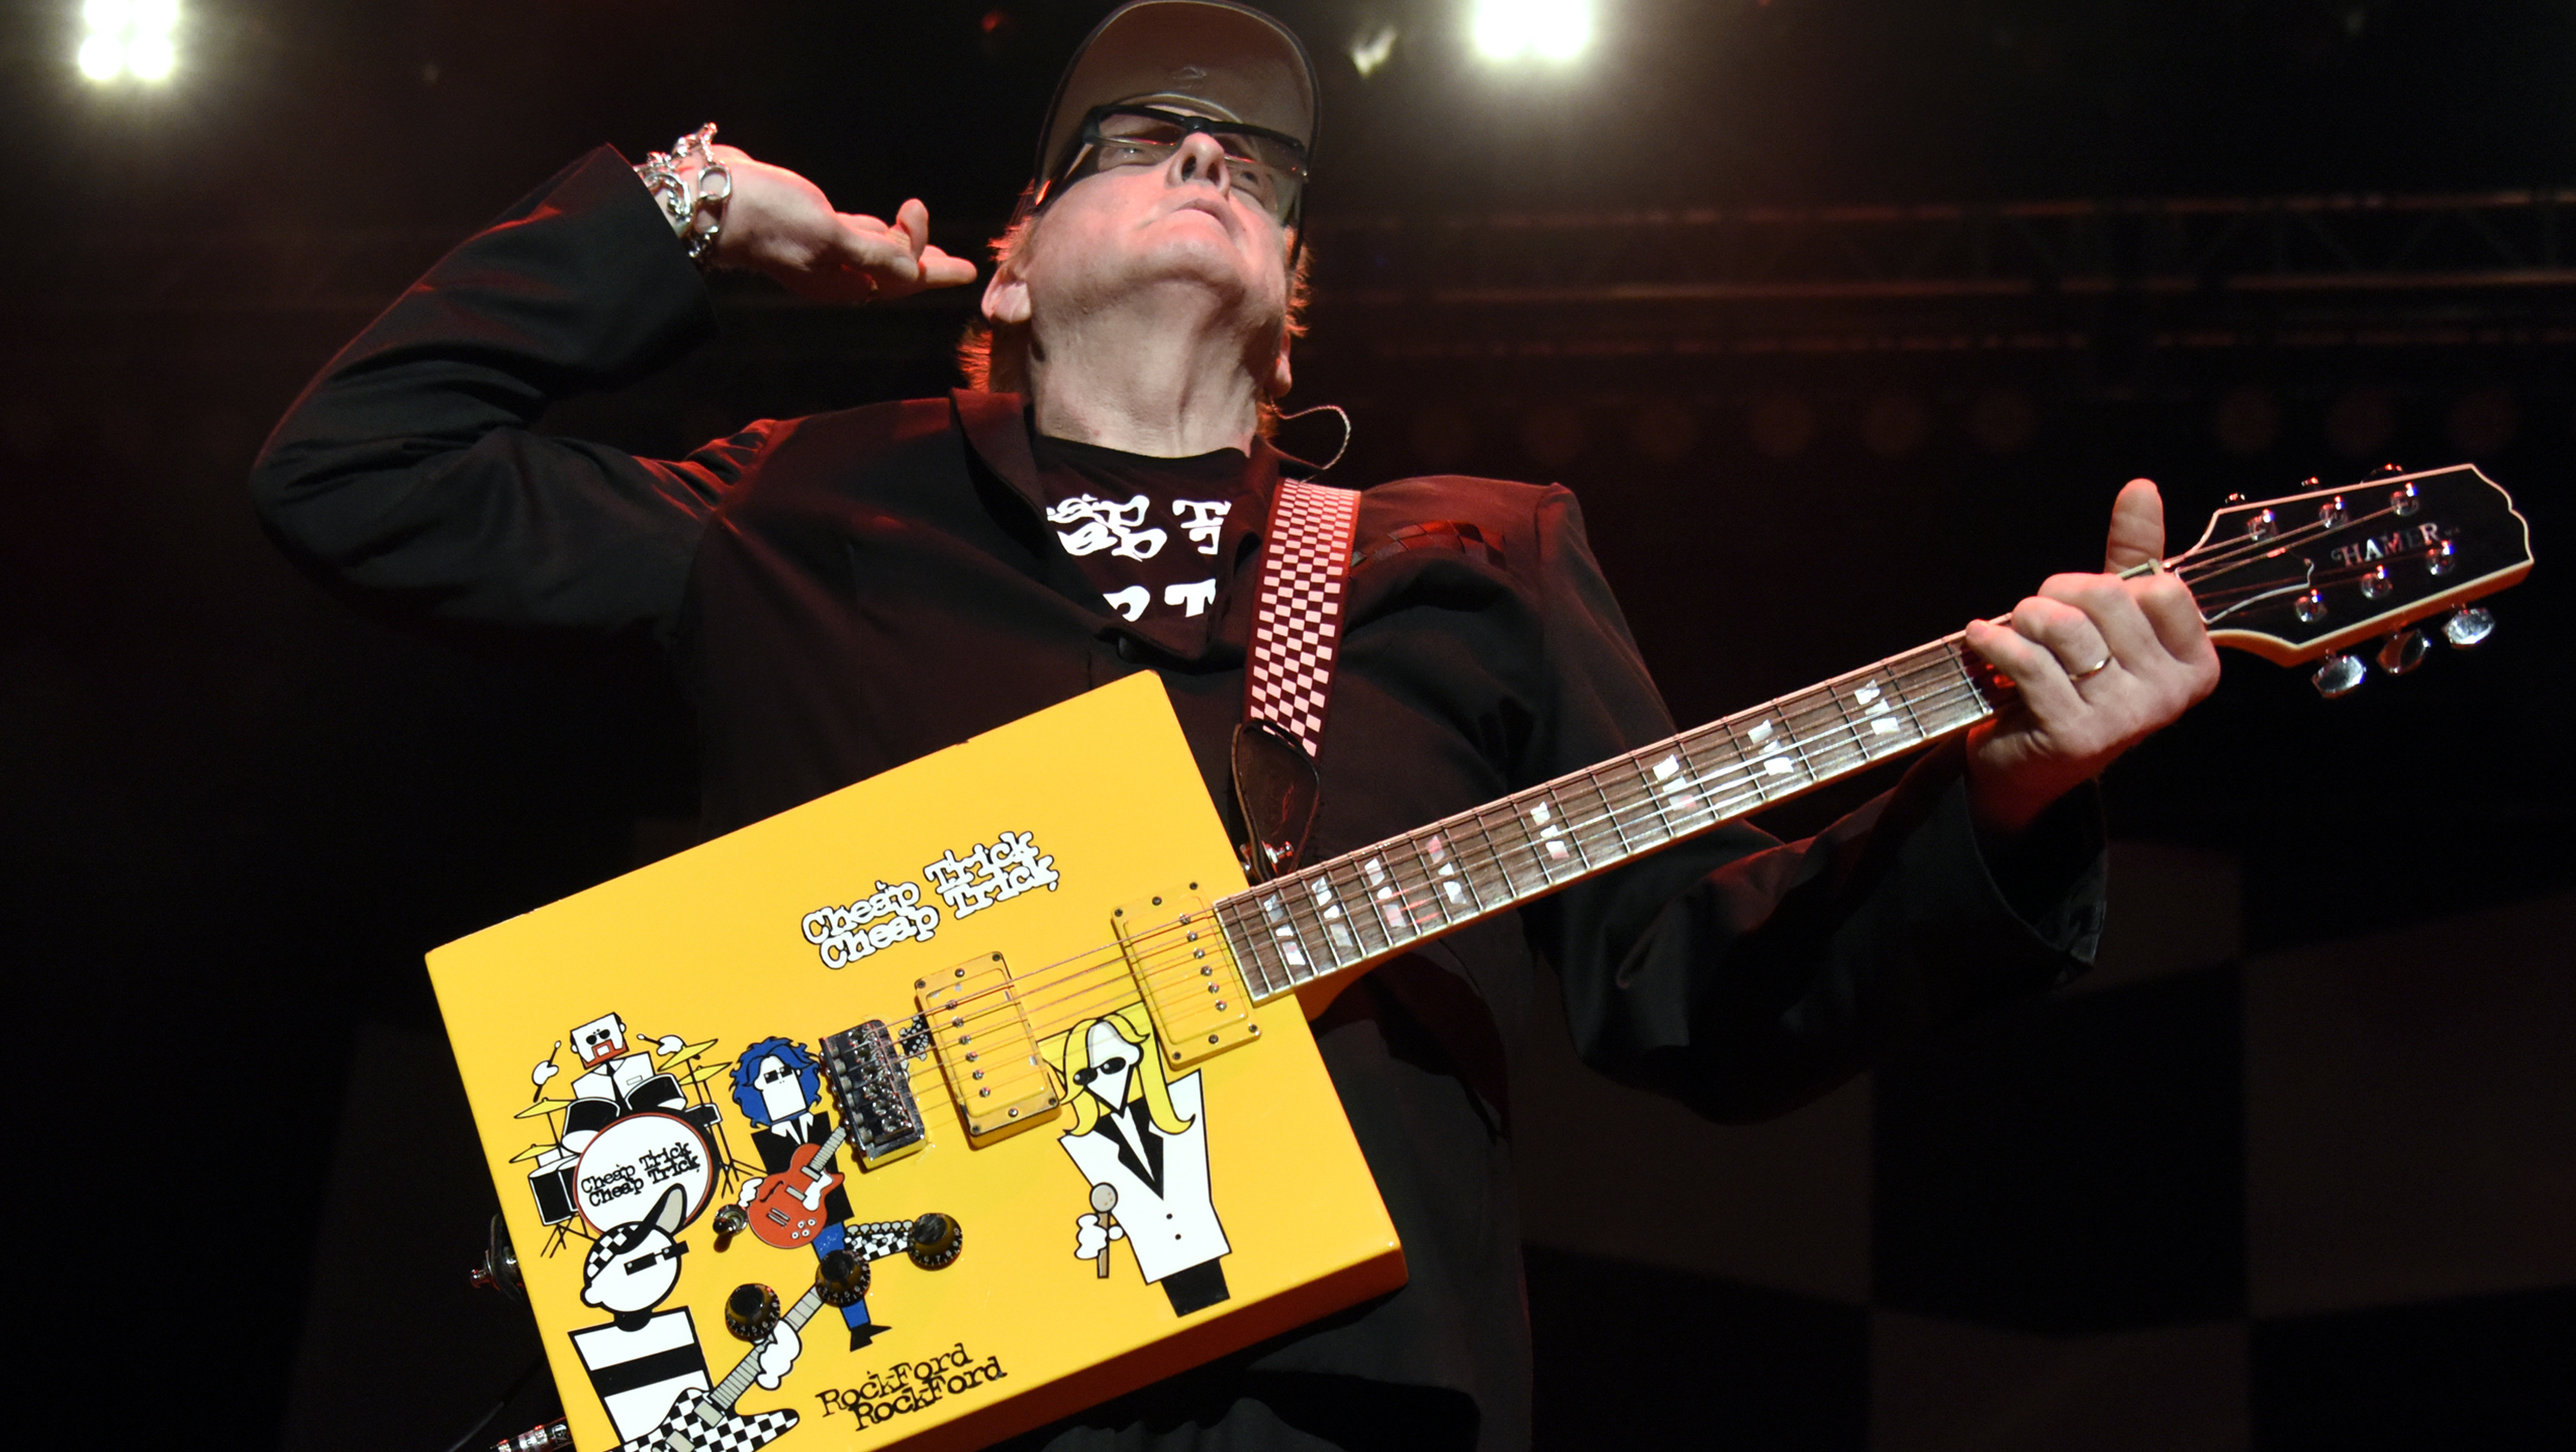 Hal Leonard Releases 'Rick Nielsen's Cheap Licks' Book and